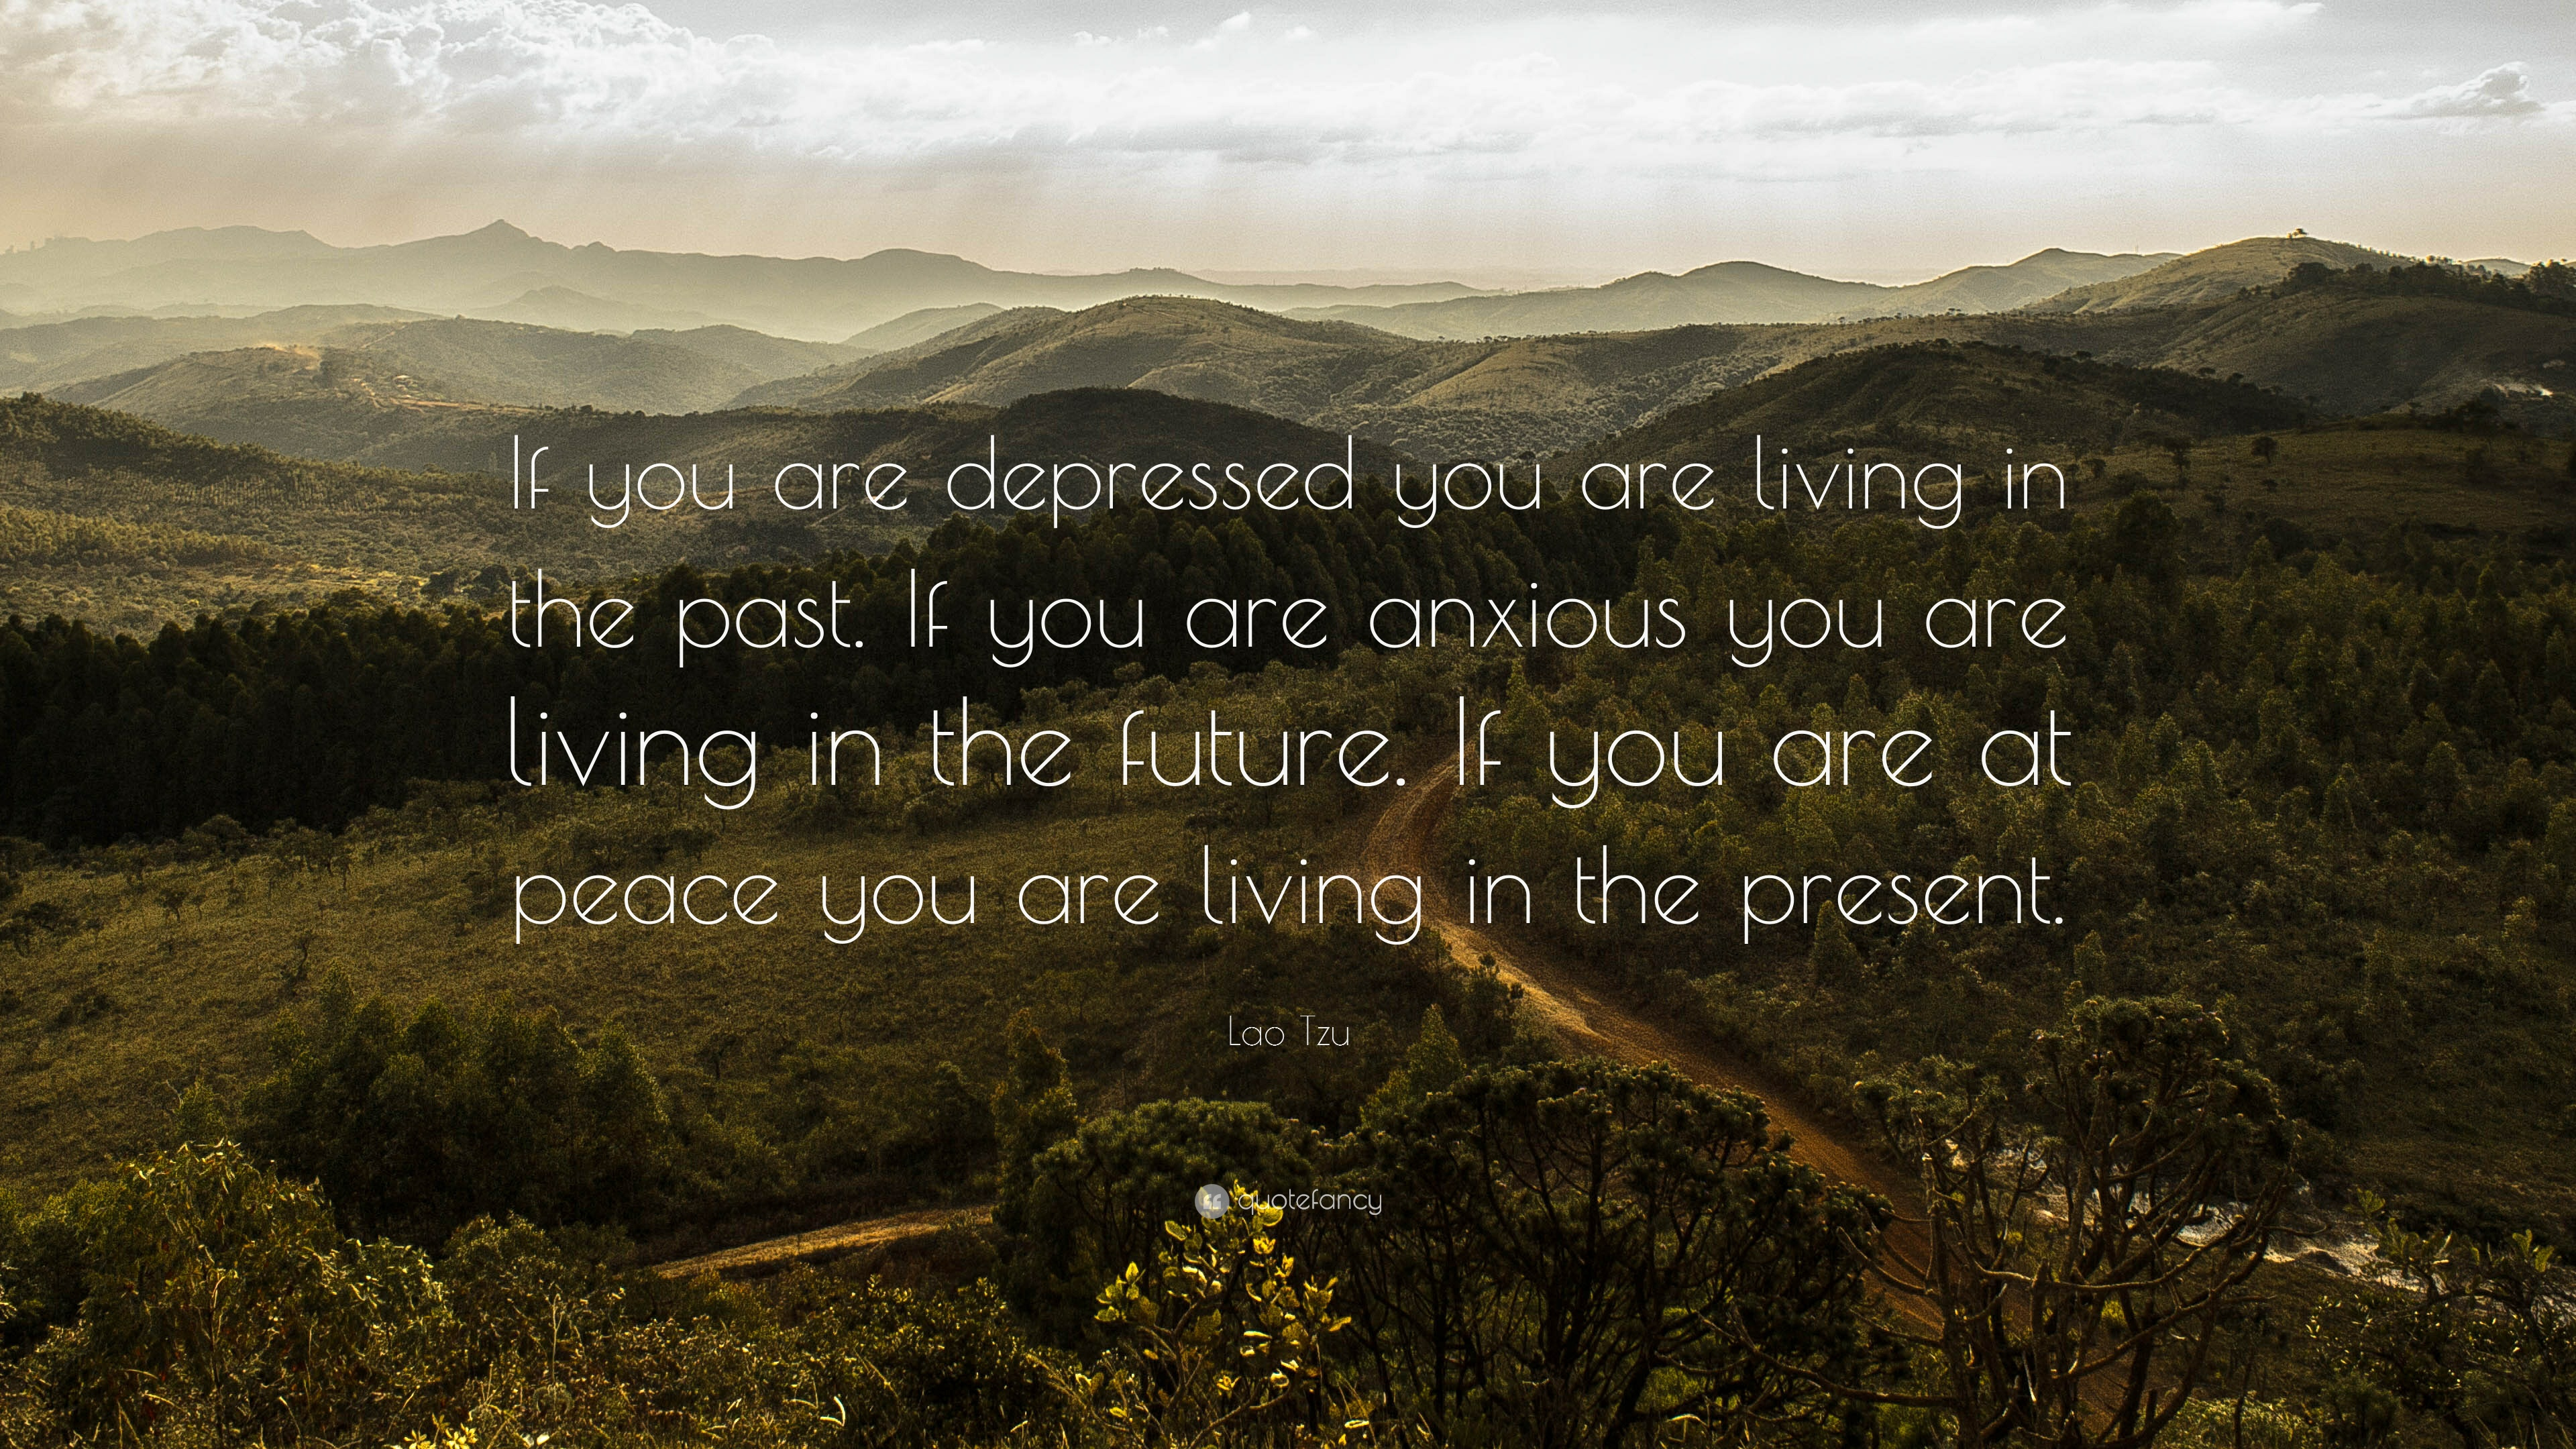 4637-Lao-Tzu-Quote-If-you-are-depressed-you-are-living-in-the-past-If.jpg